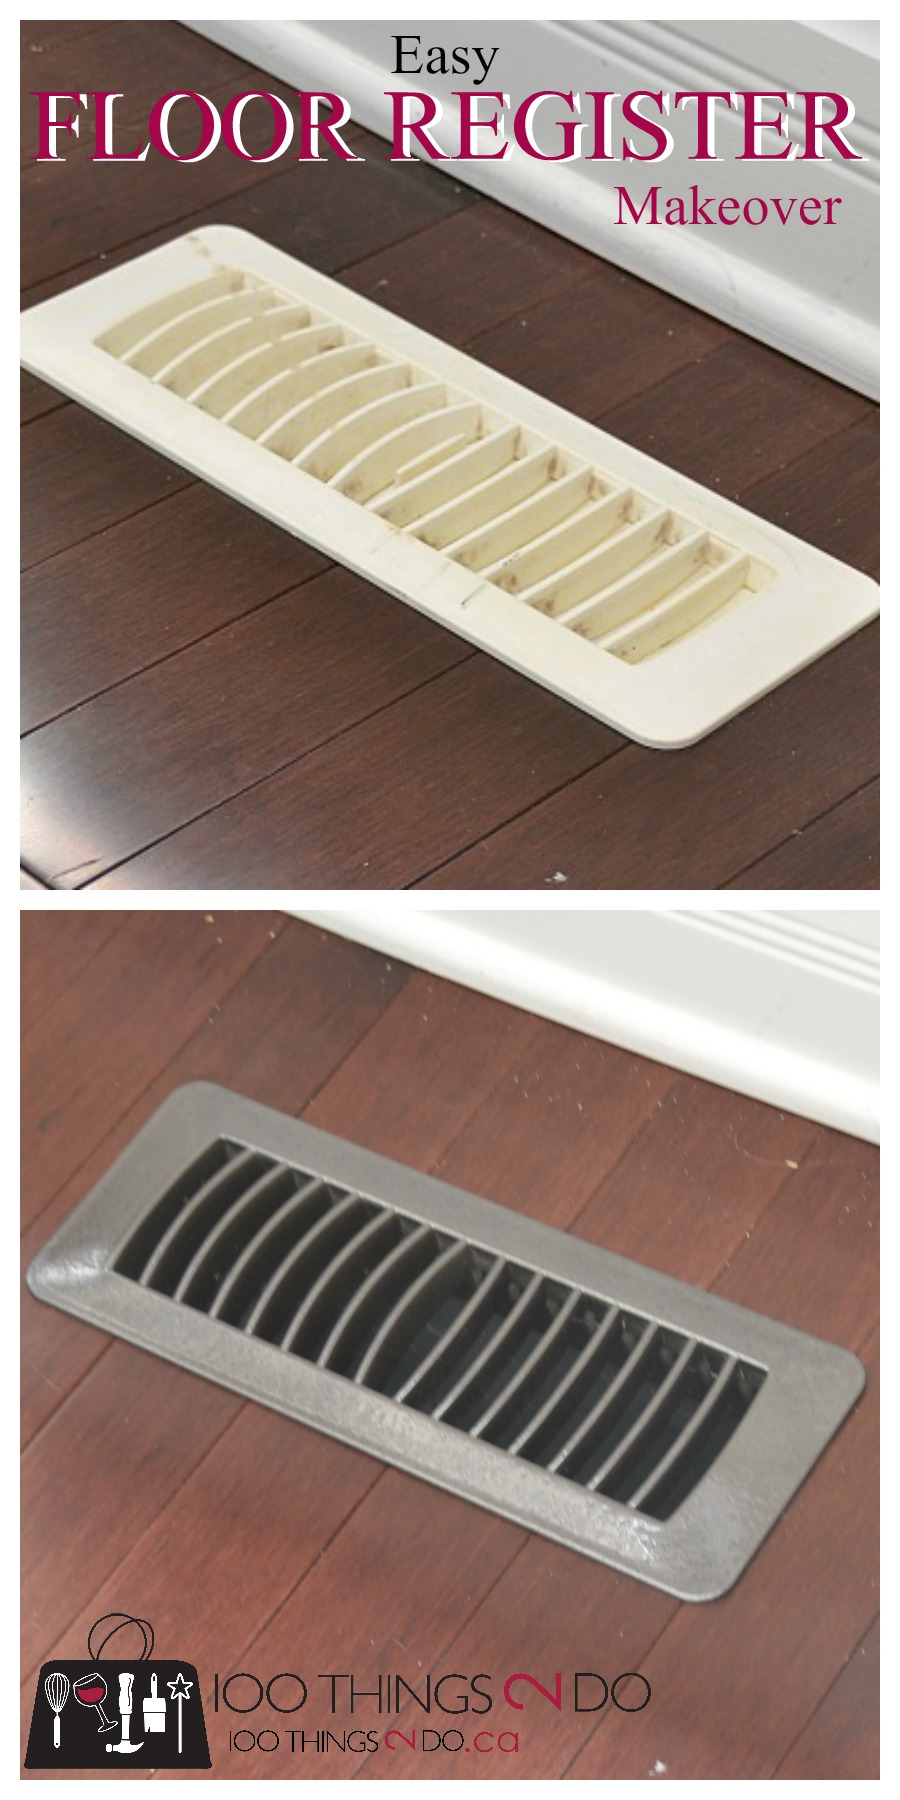 How to makeover your floor register vents 100 things 2 do for 100 floors 28th floor